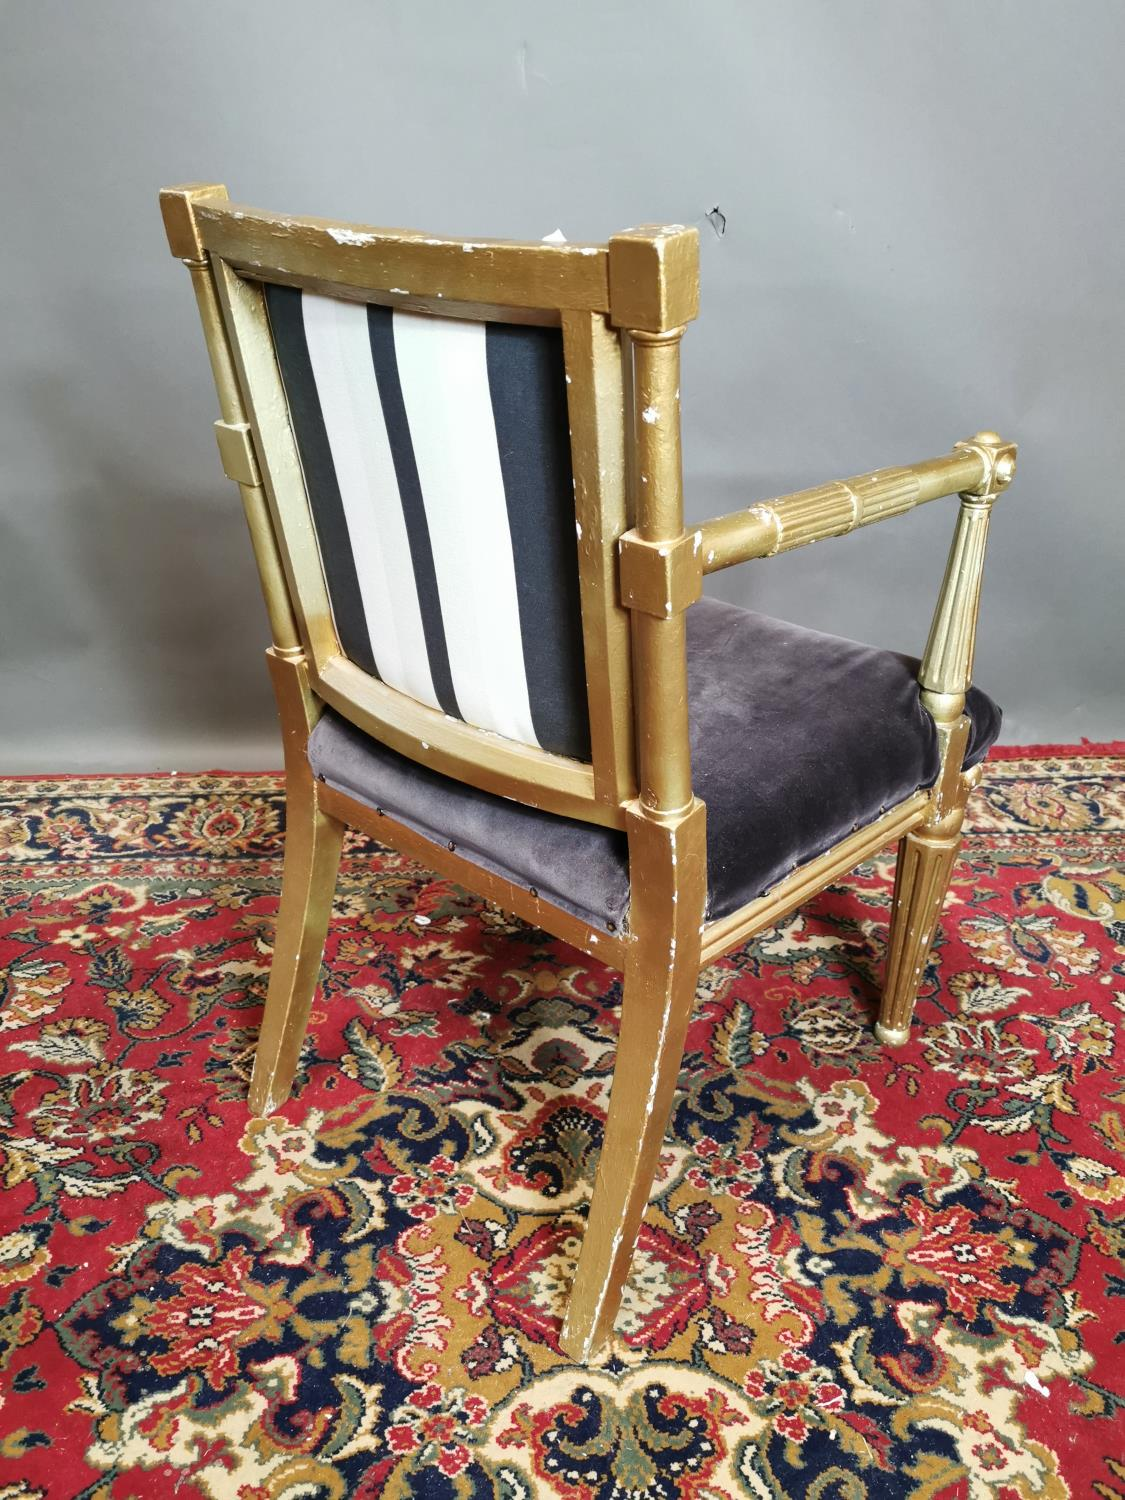 19th. C. upholstered giltwood open armchair - Image 3 of 3